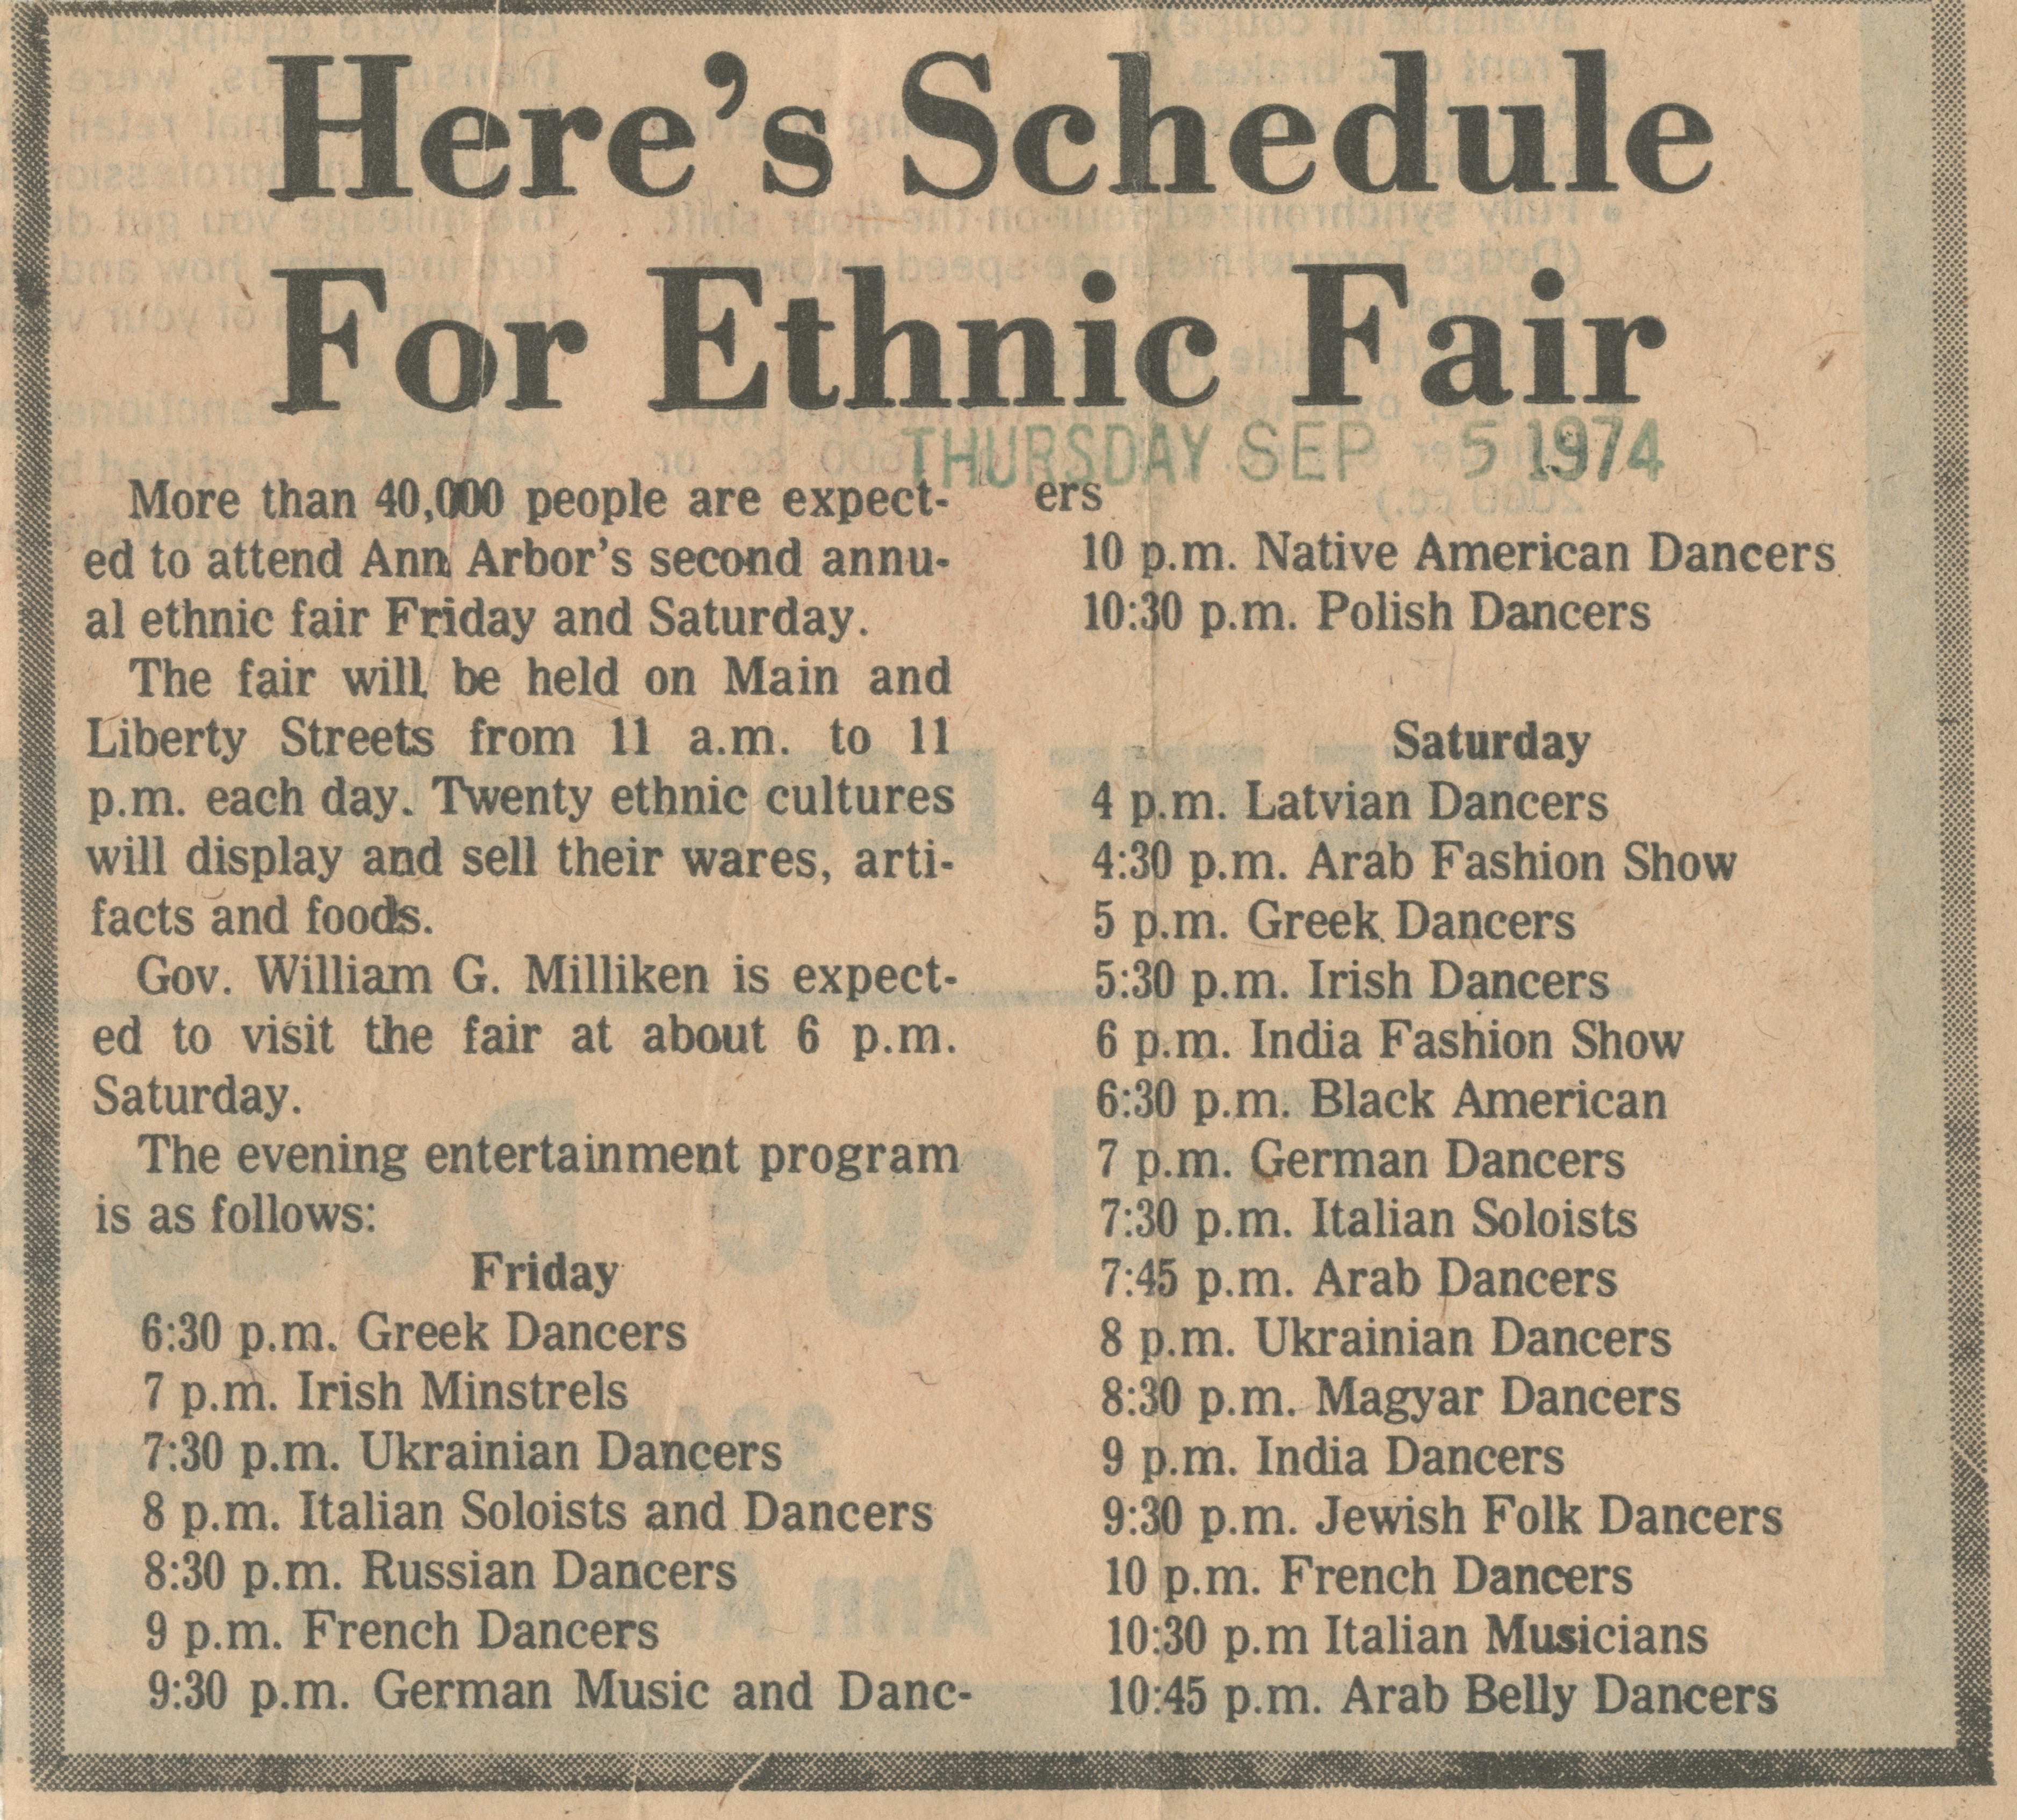 Here's Schedule For Ethnic Fair image